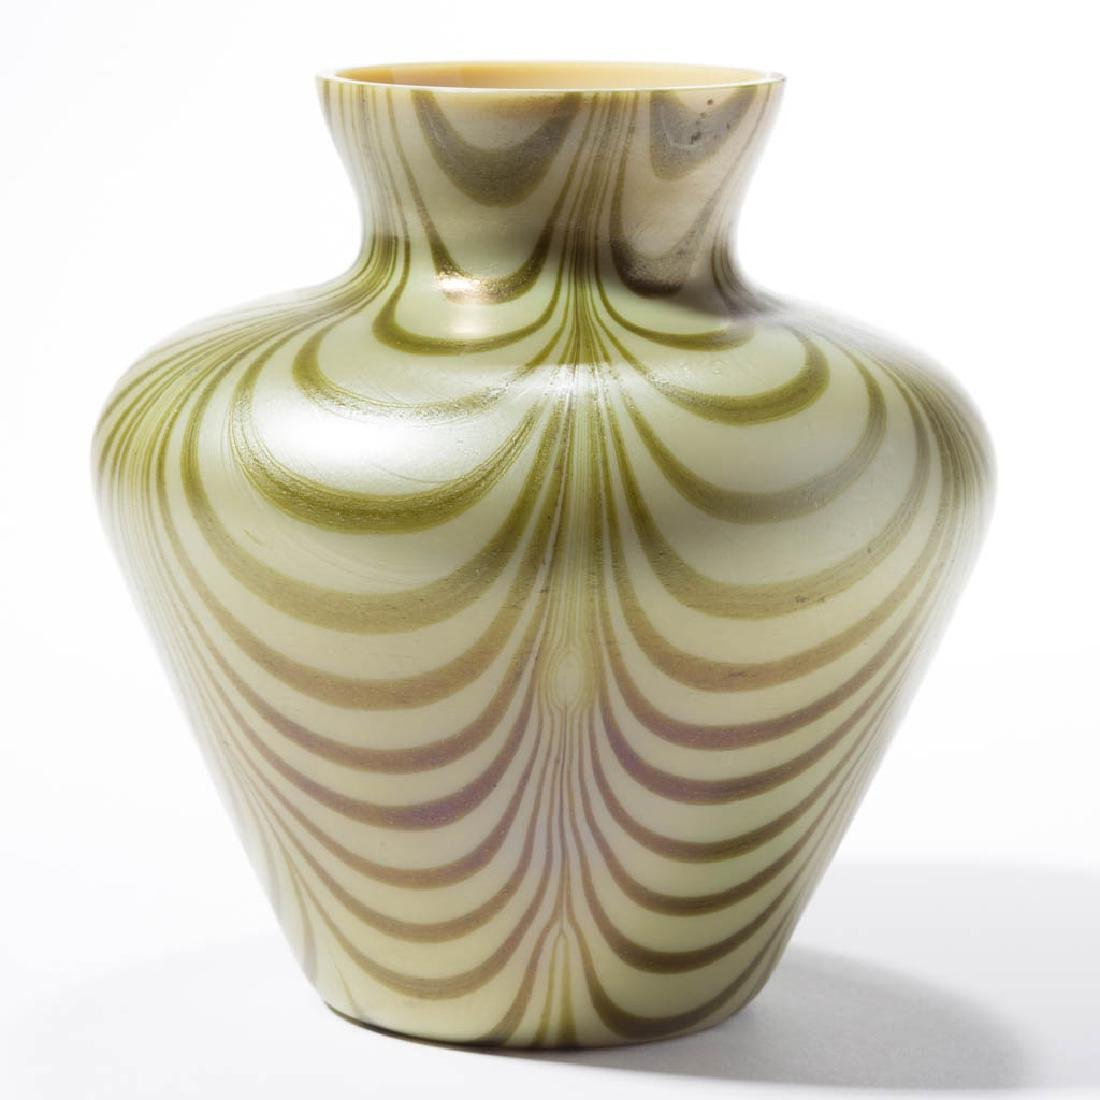 IMPERIAL FREE HAND LOOP ART GLASS VASE - 2